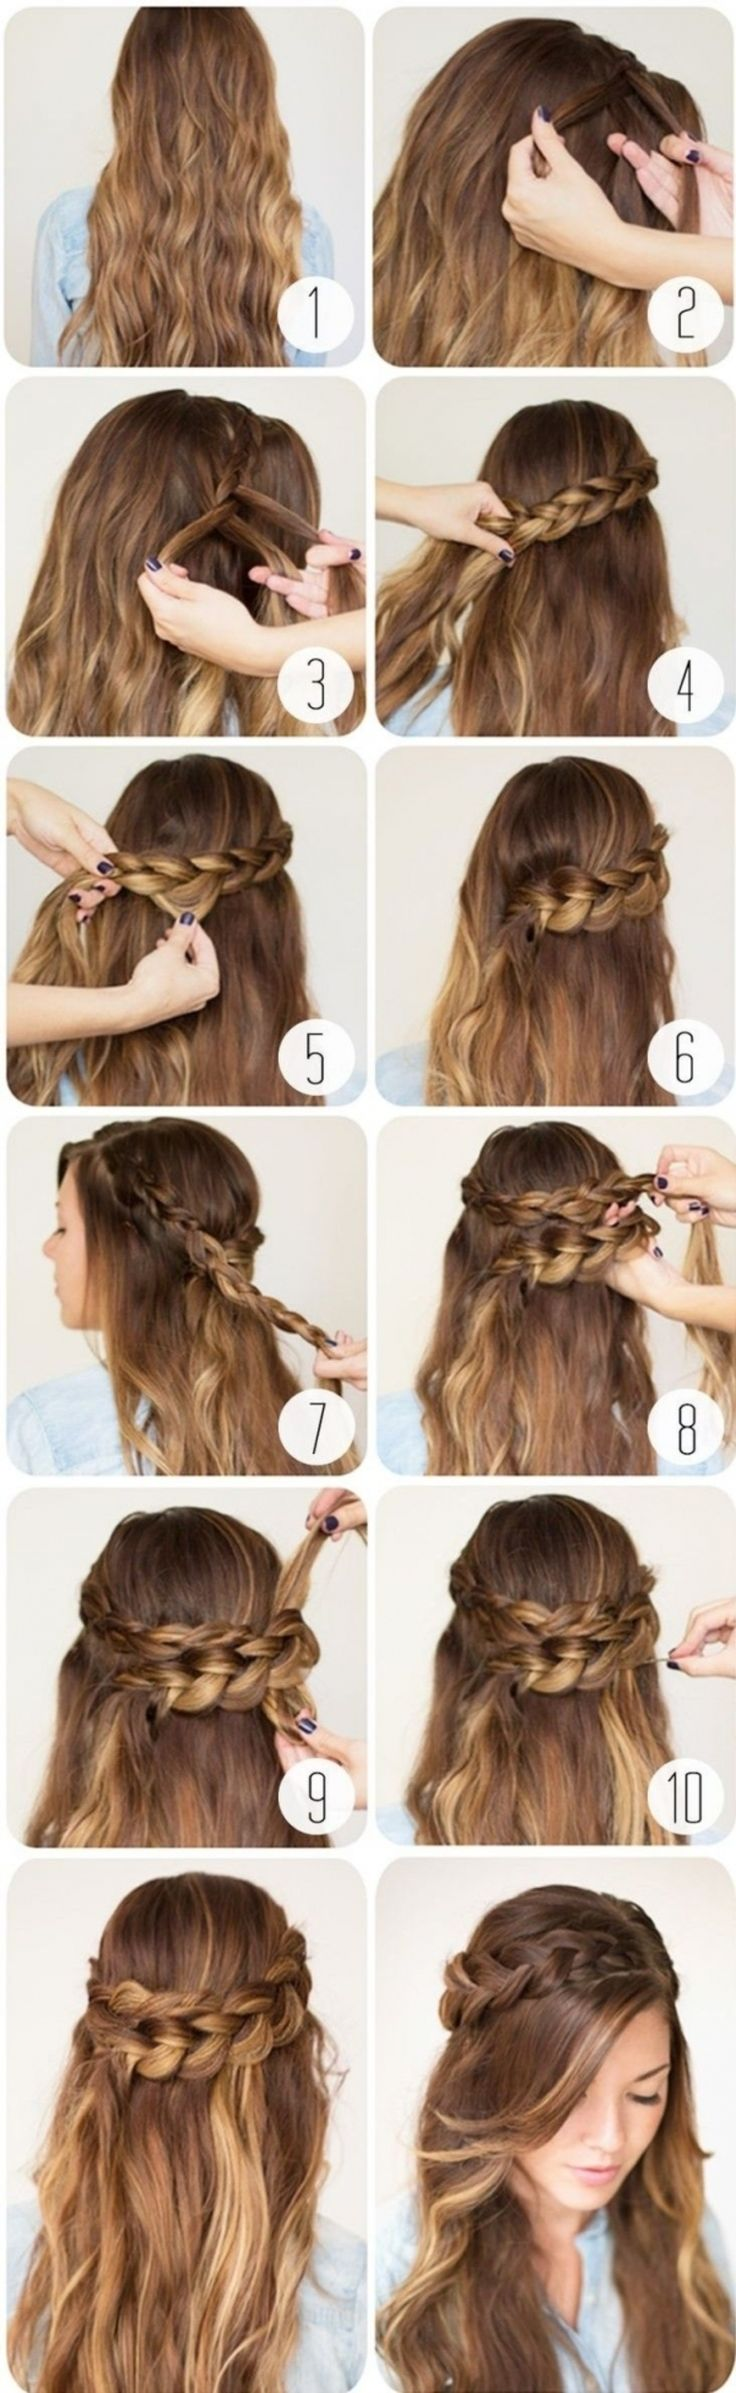 Wraparound Braid - Fancy Braided Hairstyle